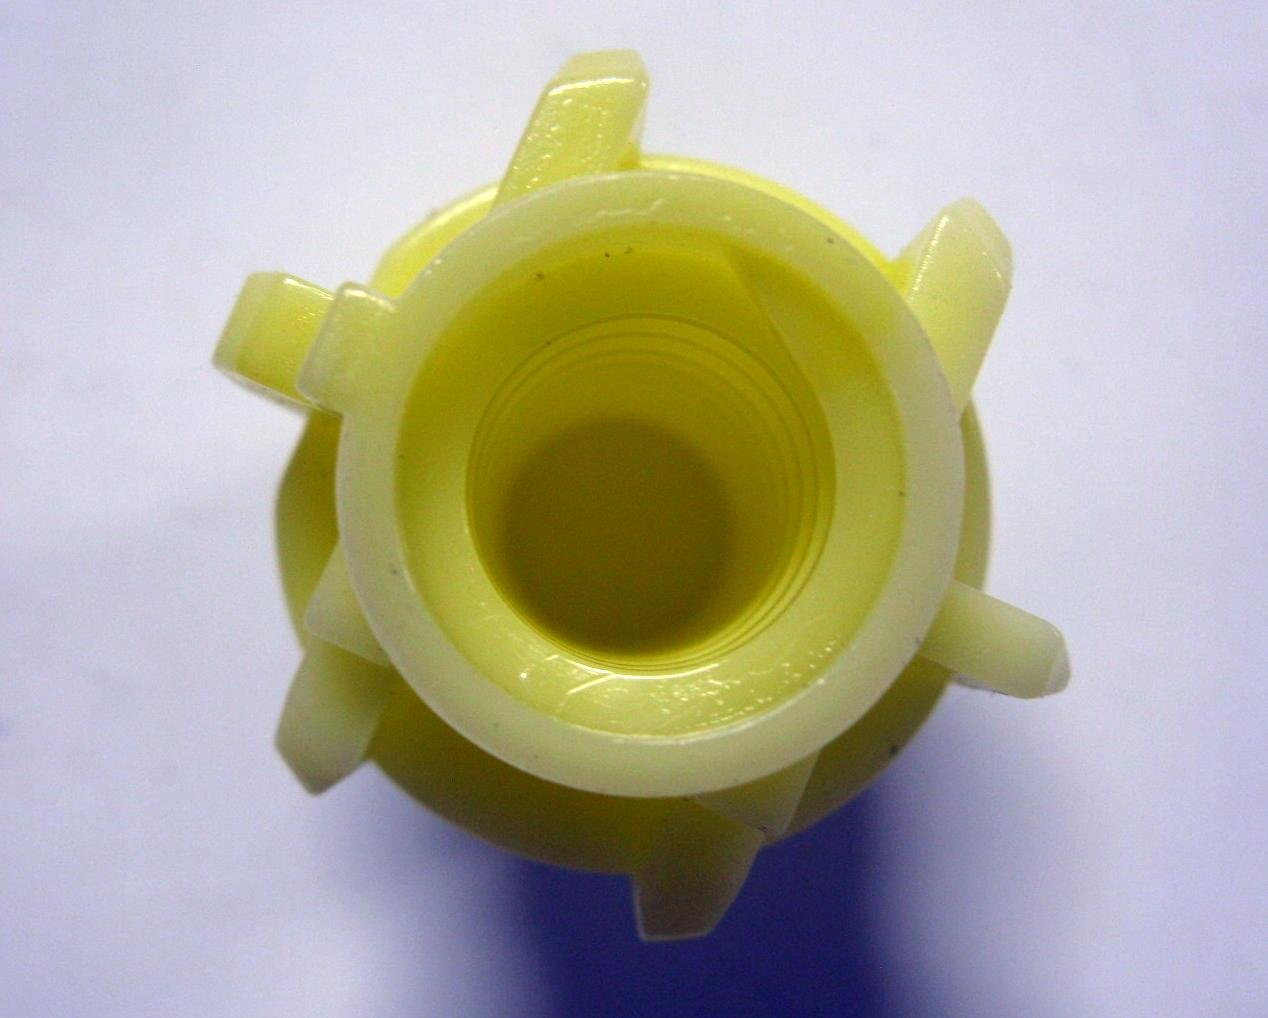 Okin Lift Chair Spindle Nut for DeltaDrive Actuators